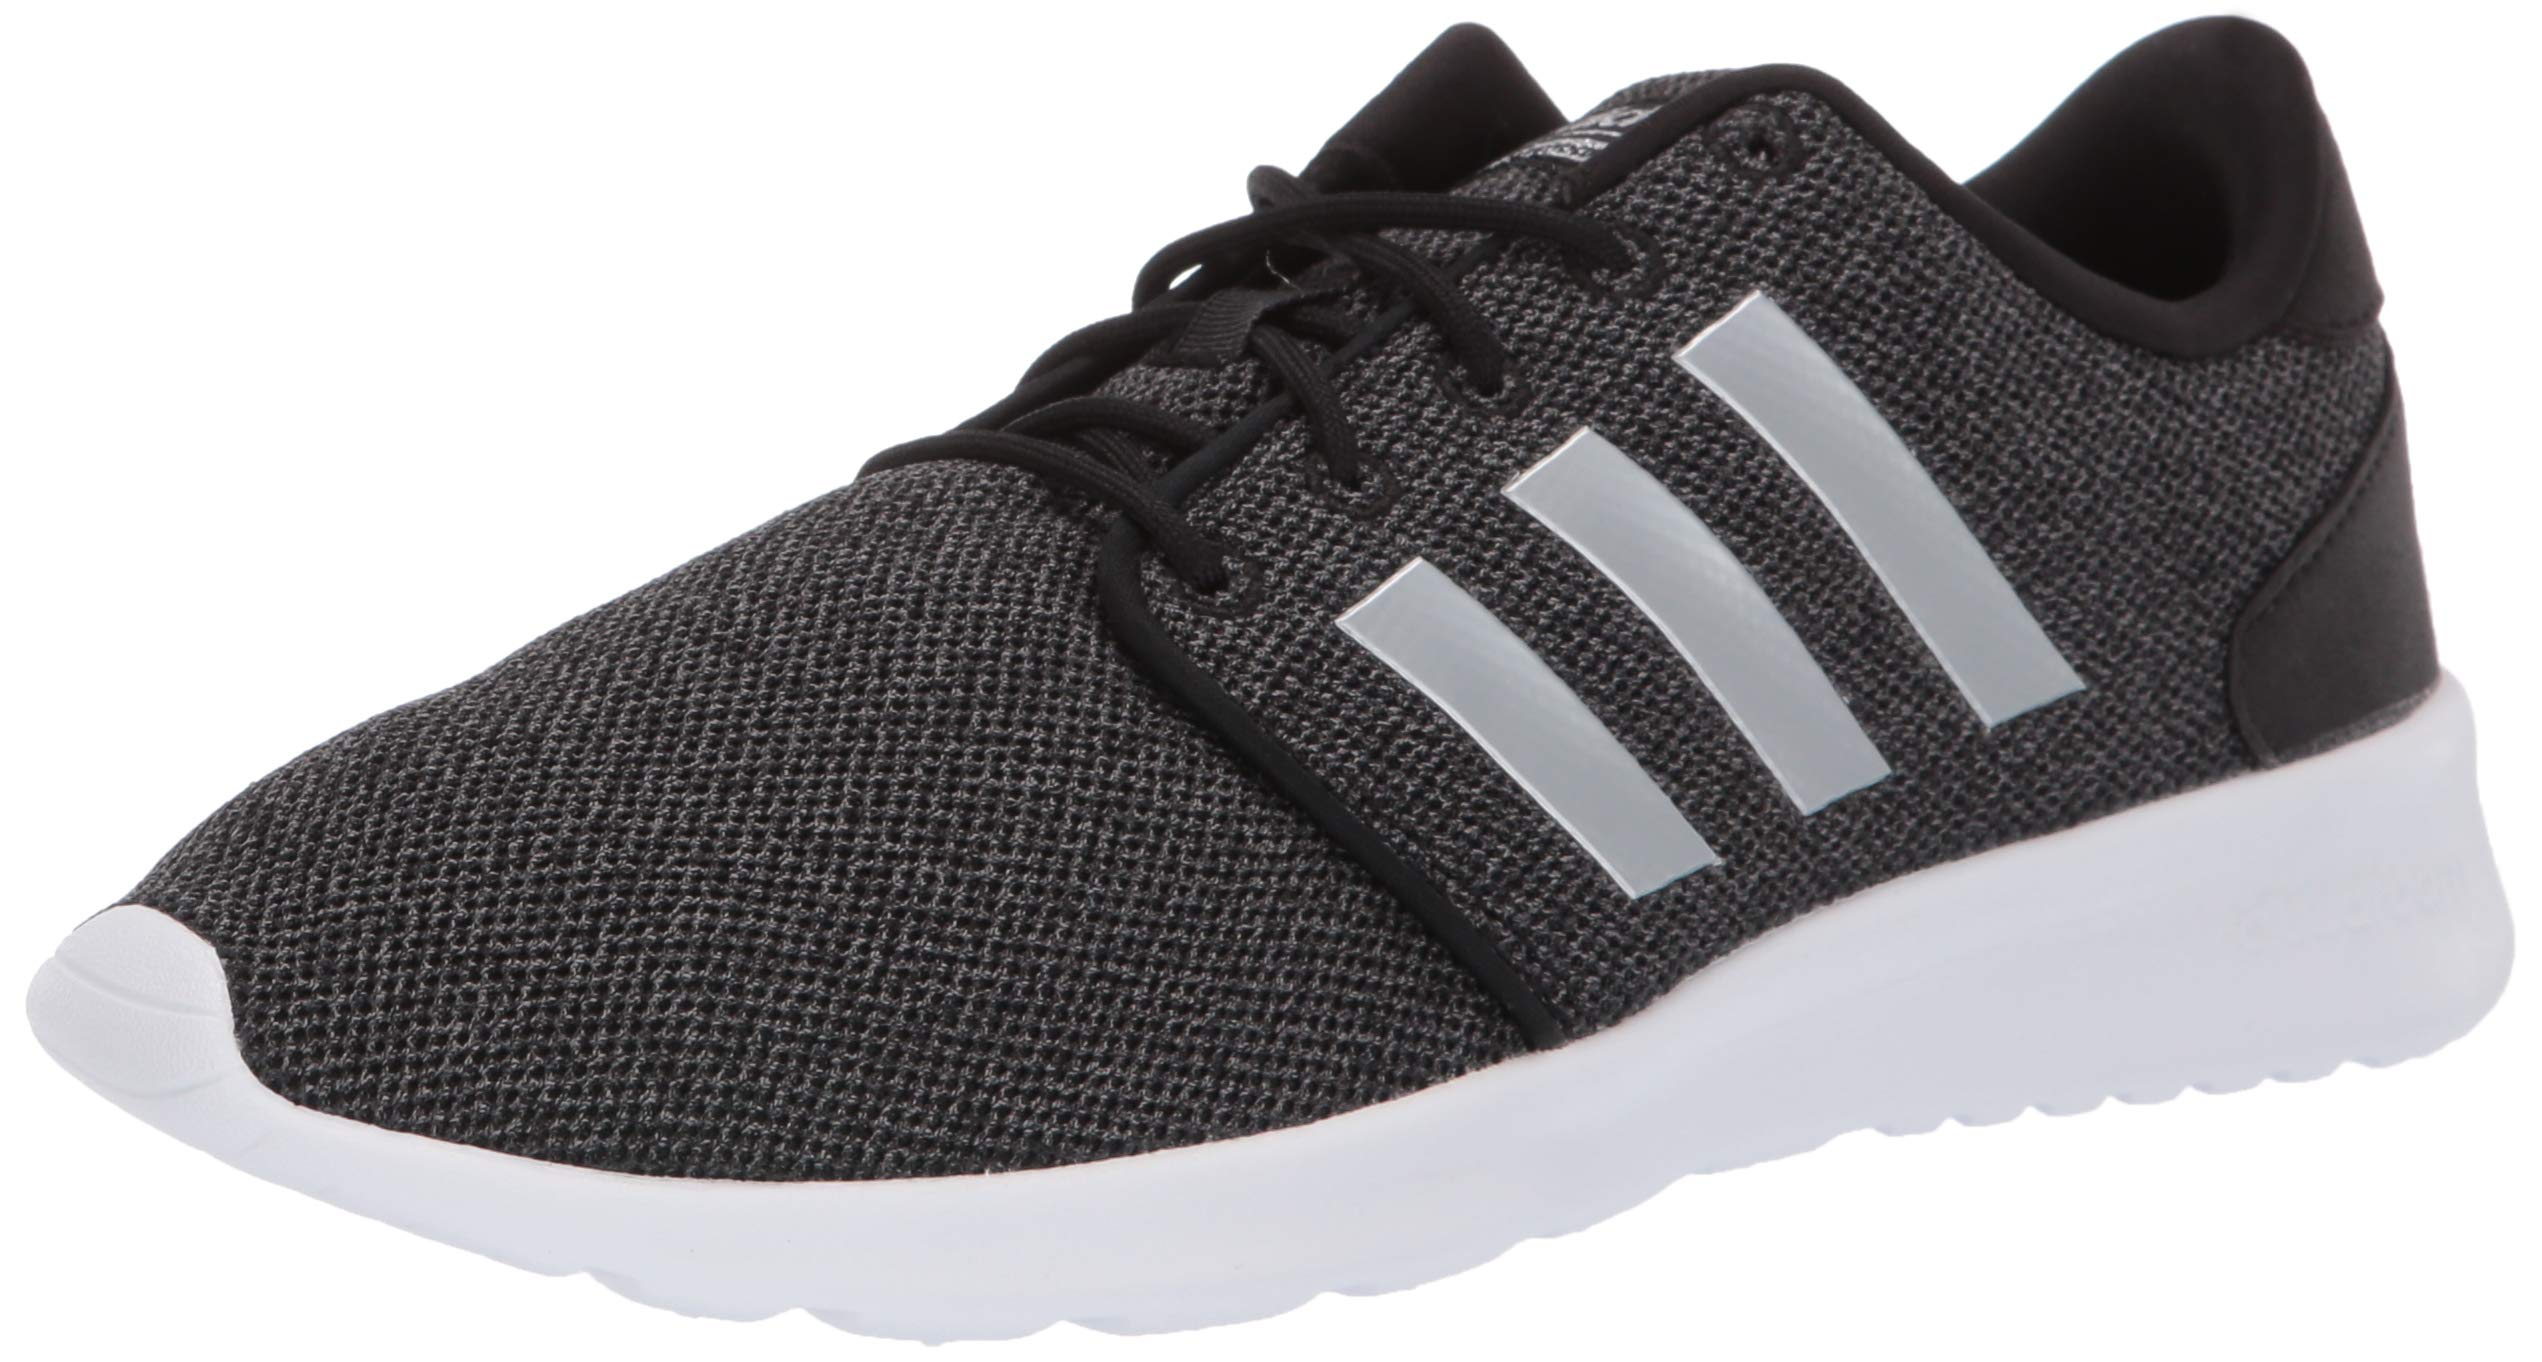 adidas Women's Cloudfoam QT Racer Running Shoe Sneaker, Black/Silver Metallic/Grey, 8.5 M US by adidas